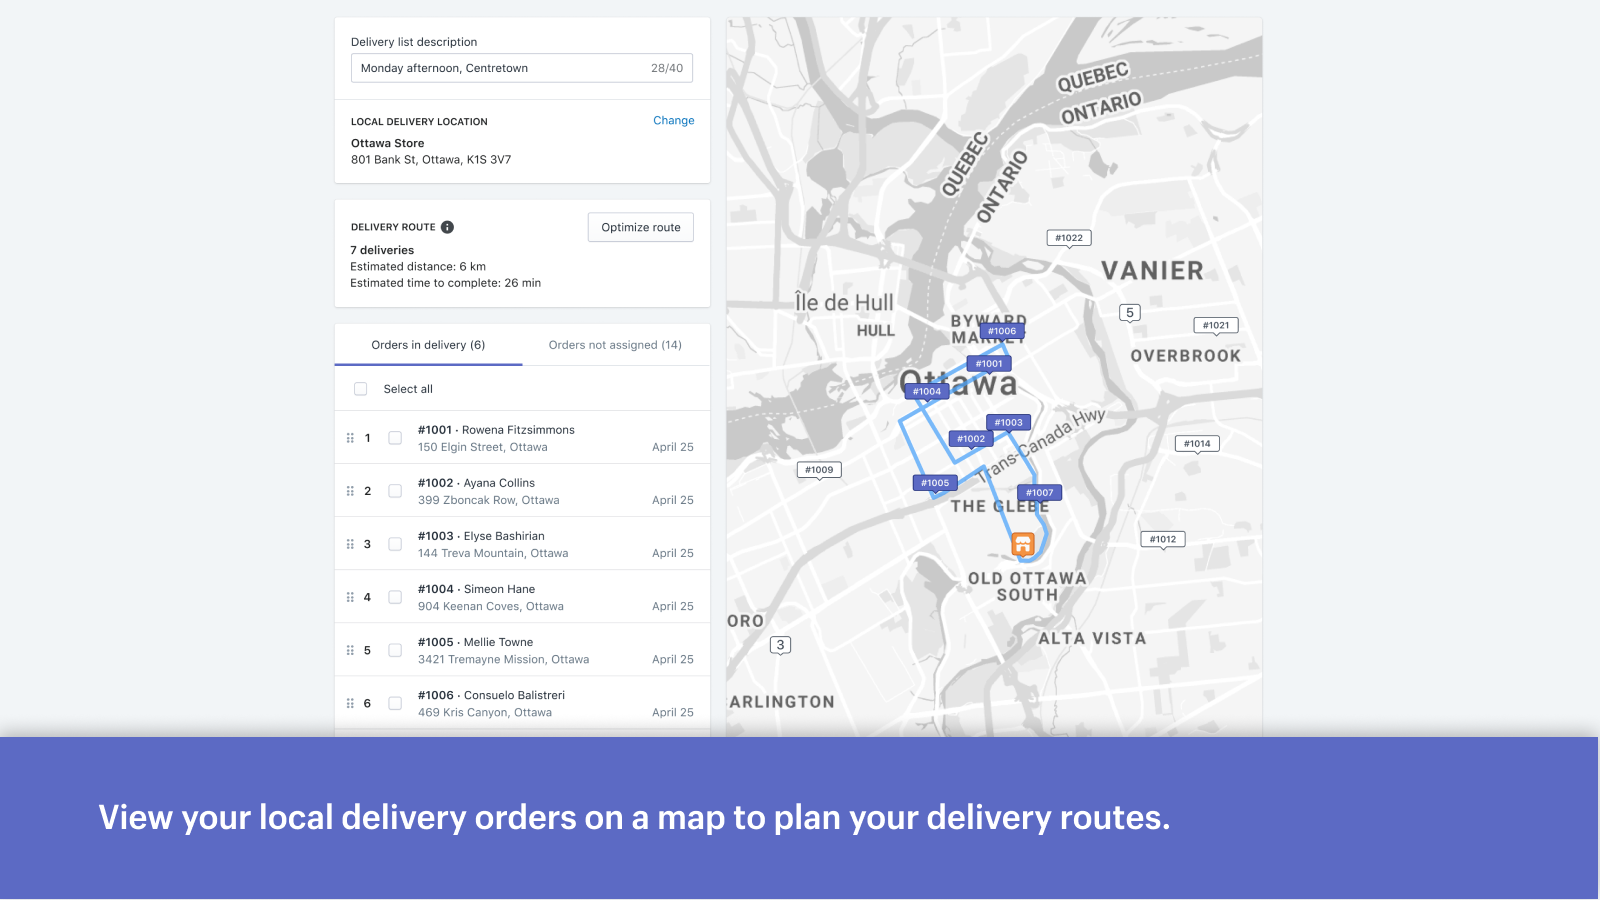 View your local delivery orders on a map to plan your deliveries